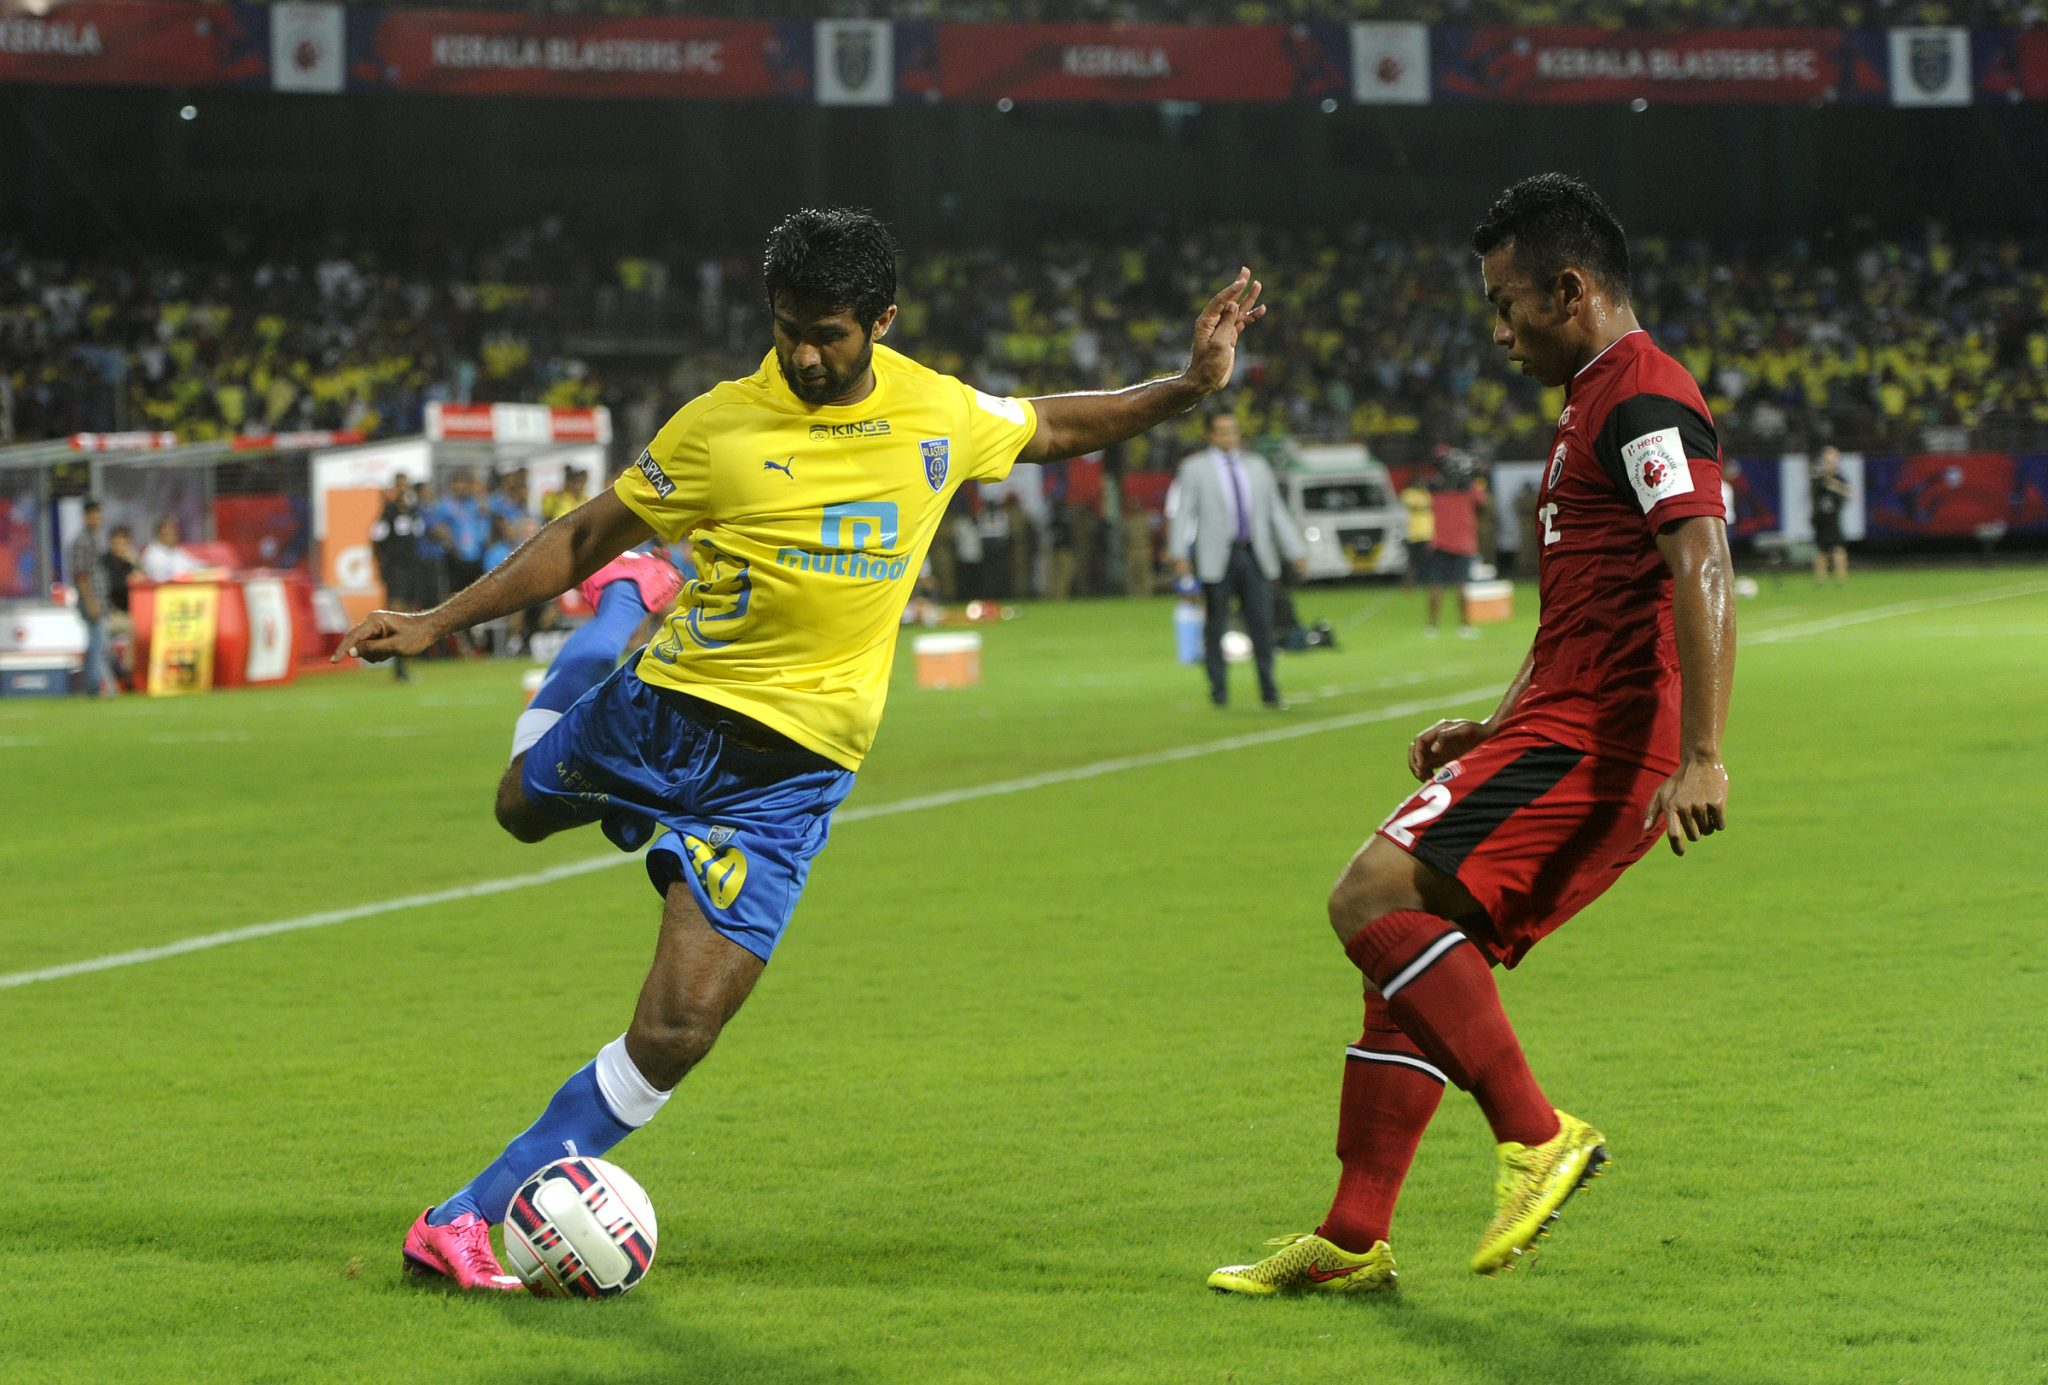 CFC Vs KBFC Fantasy Prediction: Chennaiyin Vs Kerala Blasters Best Fantasy Picks for Super League 2020-21 Match